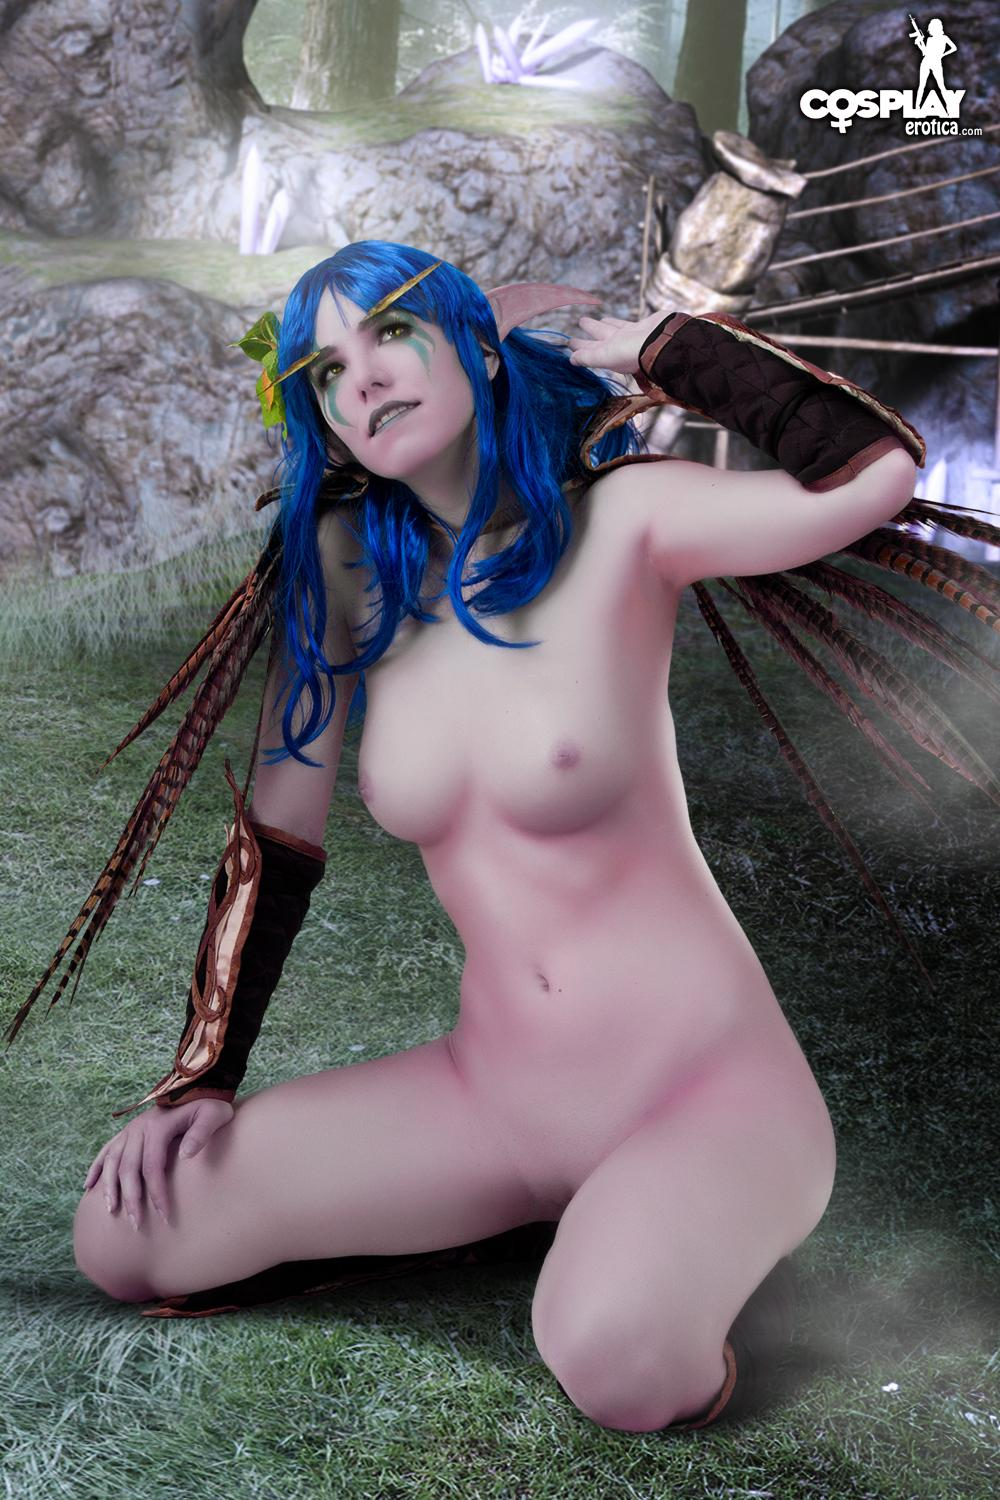 Cosplay night elf sex video erotica pic